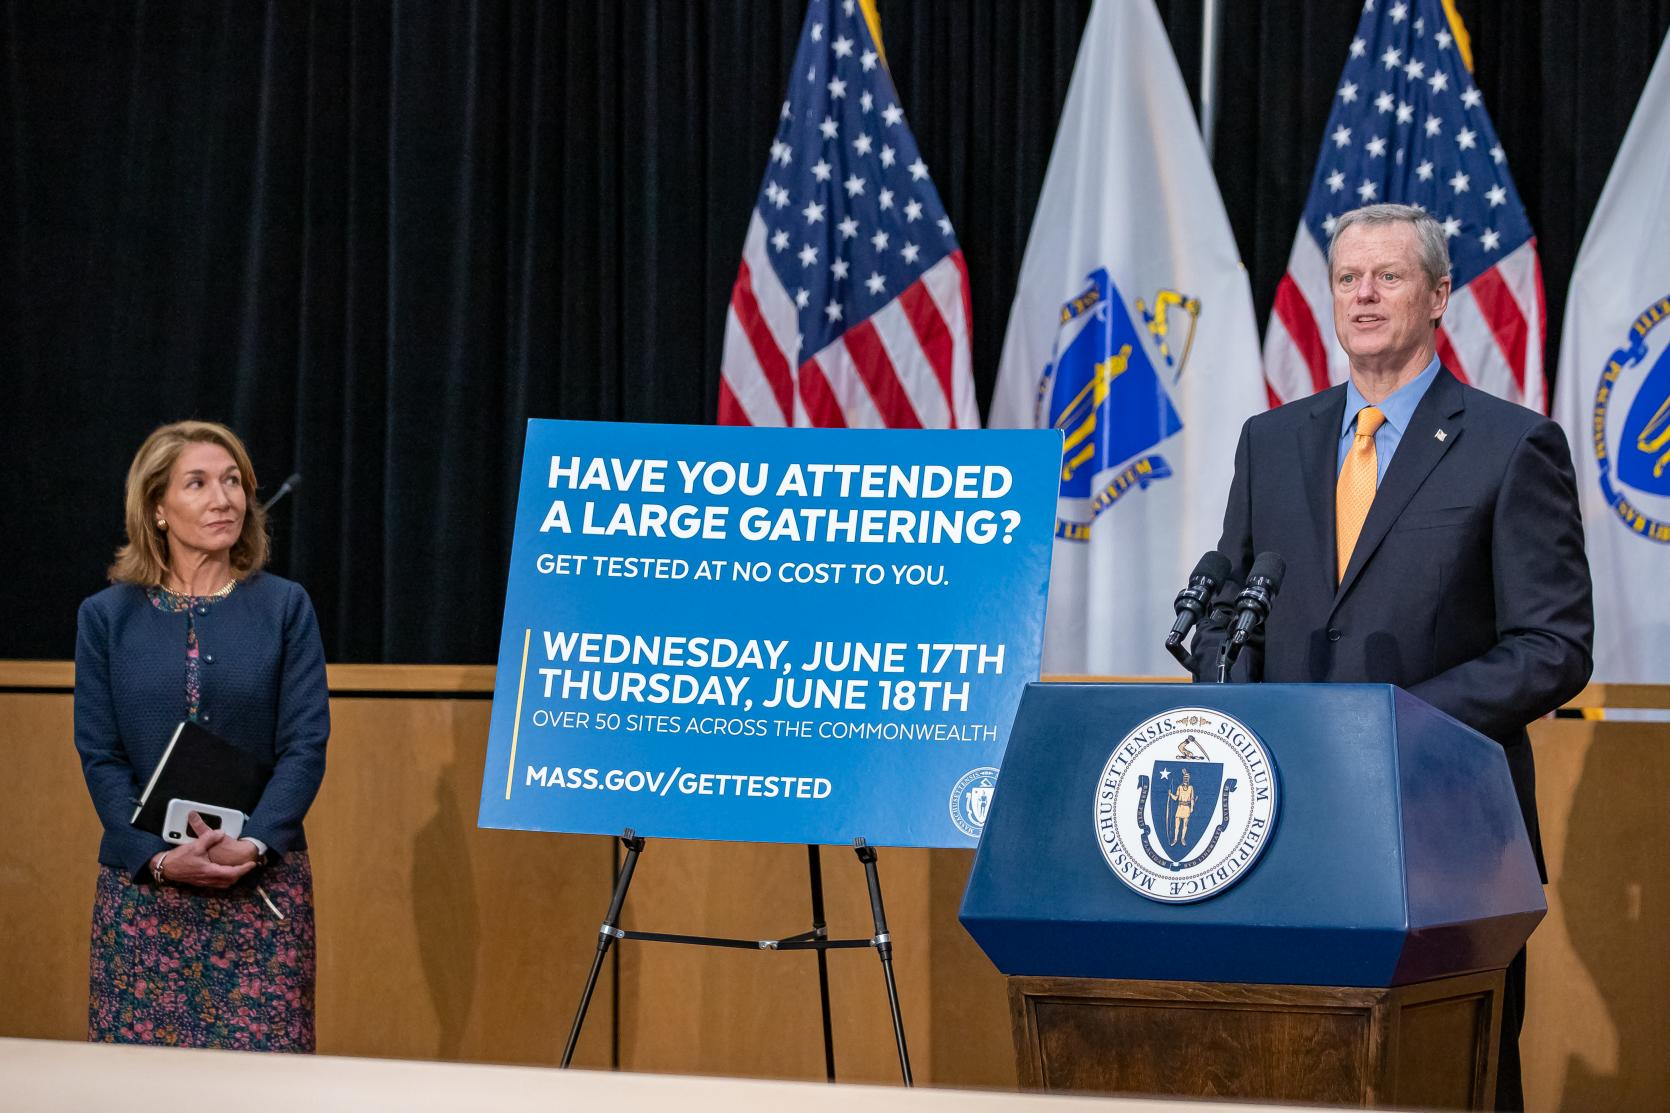 Baker-Polito Administration Announces Pop-Up Testing Sites for Participants of Large Gatherings